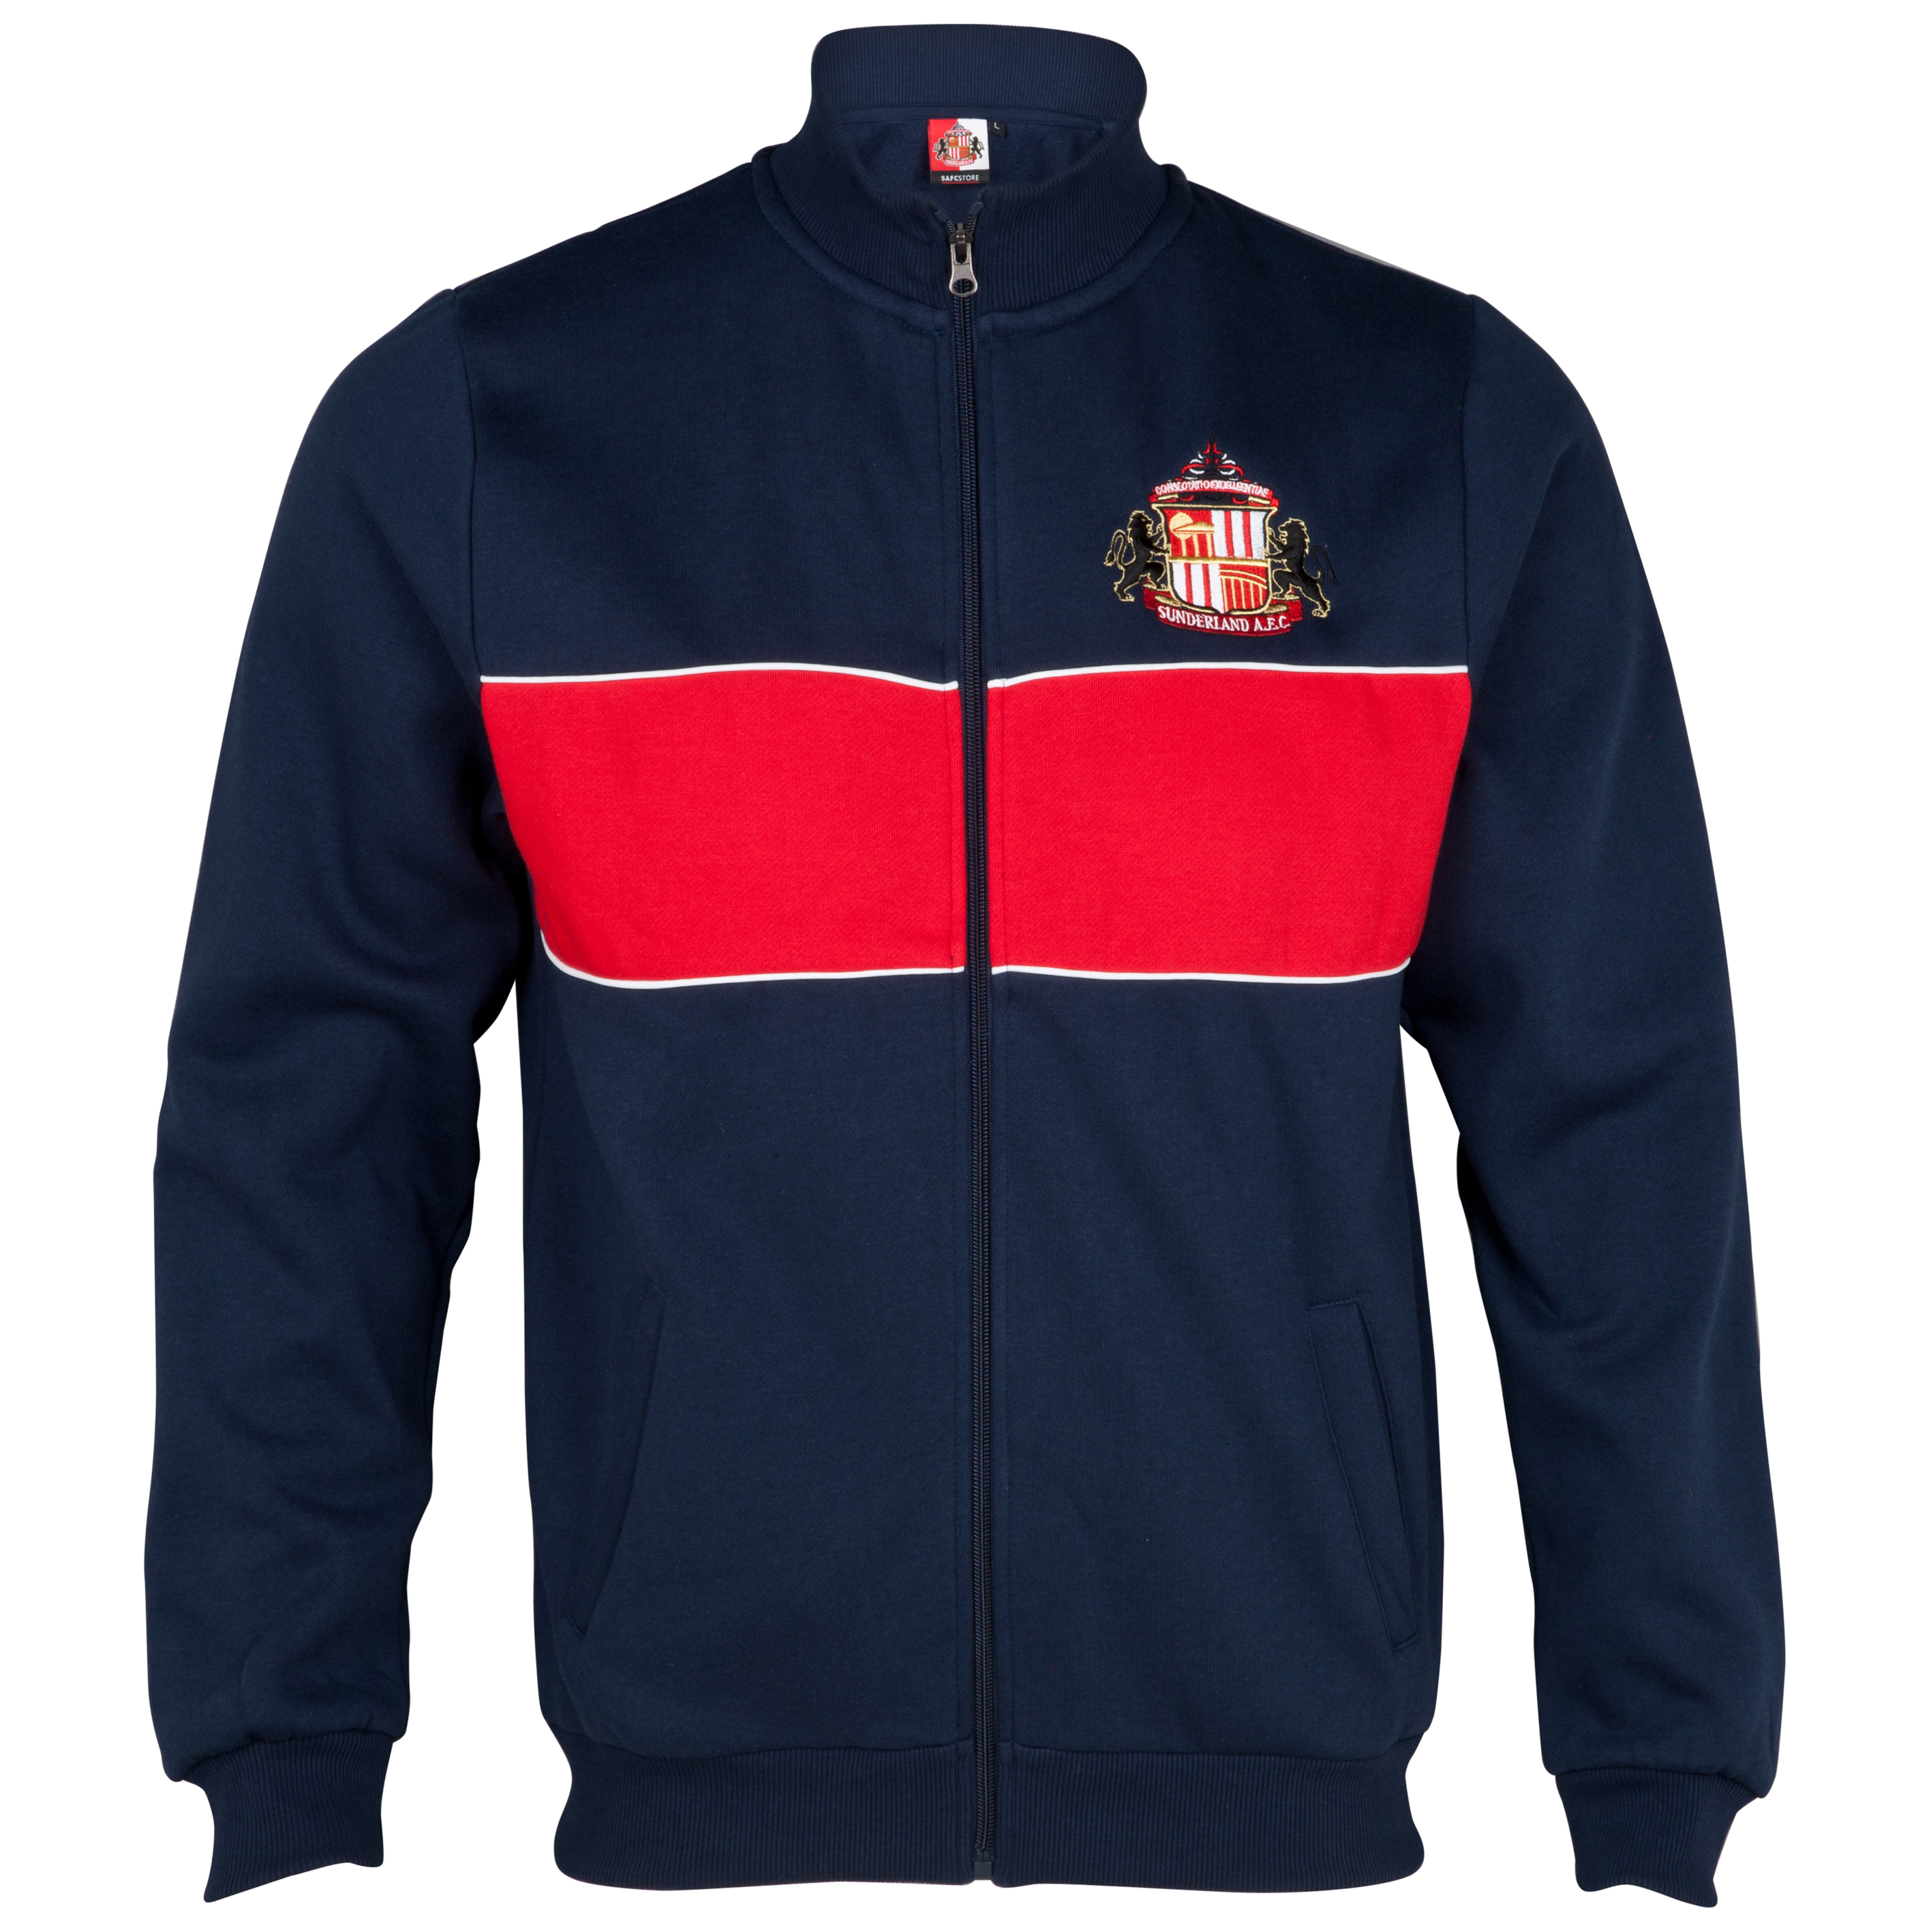 Sunderland Essential Game Track Top - Navy/Red - Older Boys